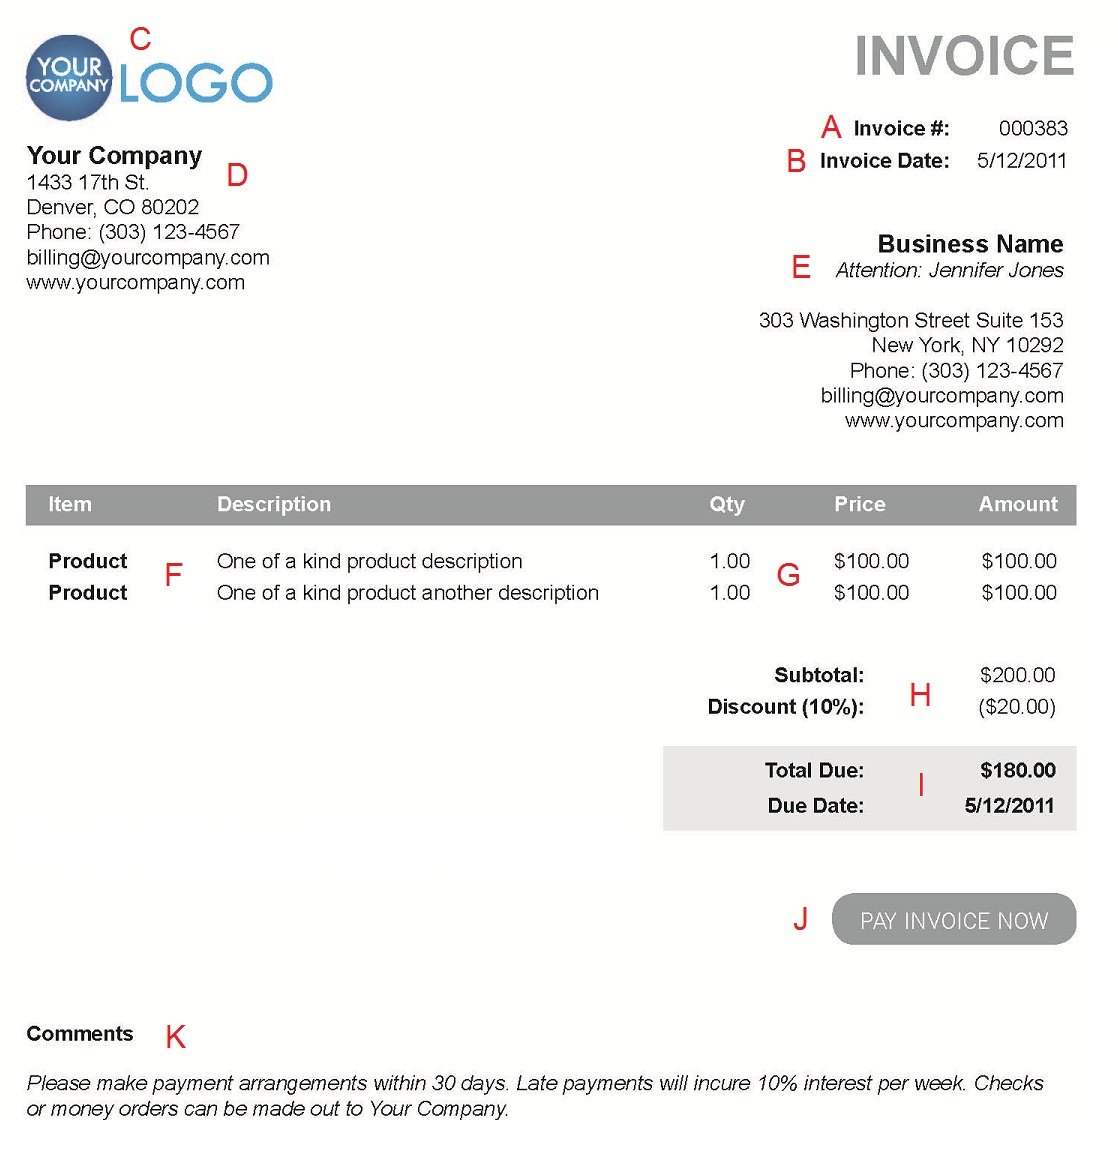 Carterusaus  Wonderful The  Different Sections Of An Electronic Payment Invoice With Exquisite A  With Delightful Free Fillable Invoice Template Also Mazda  Invoice Price In Addition Einvoicing Software And Lawn Service Invoice Template As Well As How Do You Make An Invoice Additionally Open Source Invoicing From Paysimplecom With Carterusaus  Exquisite The  Different Sections Of An Electronic Payment Invoice With Delightful A  And Wonderful Free Fillable Invoice Template Also Mazda  Invoice Price In Addition Einvoicing Software From Paysimplecom